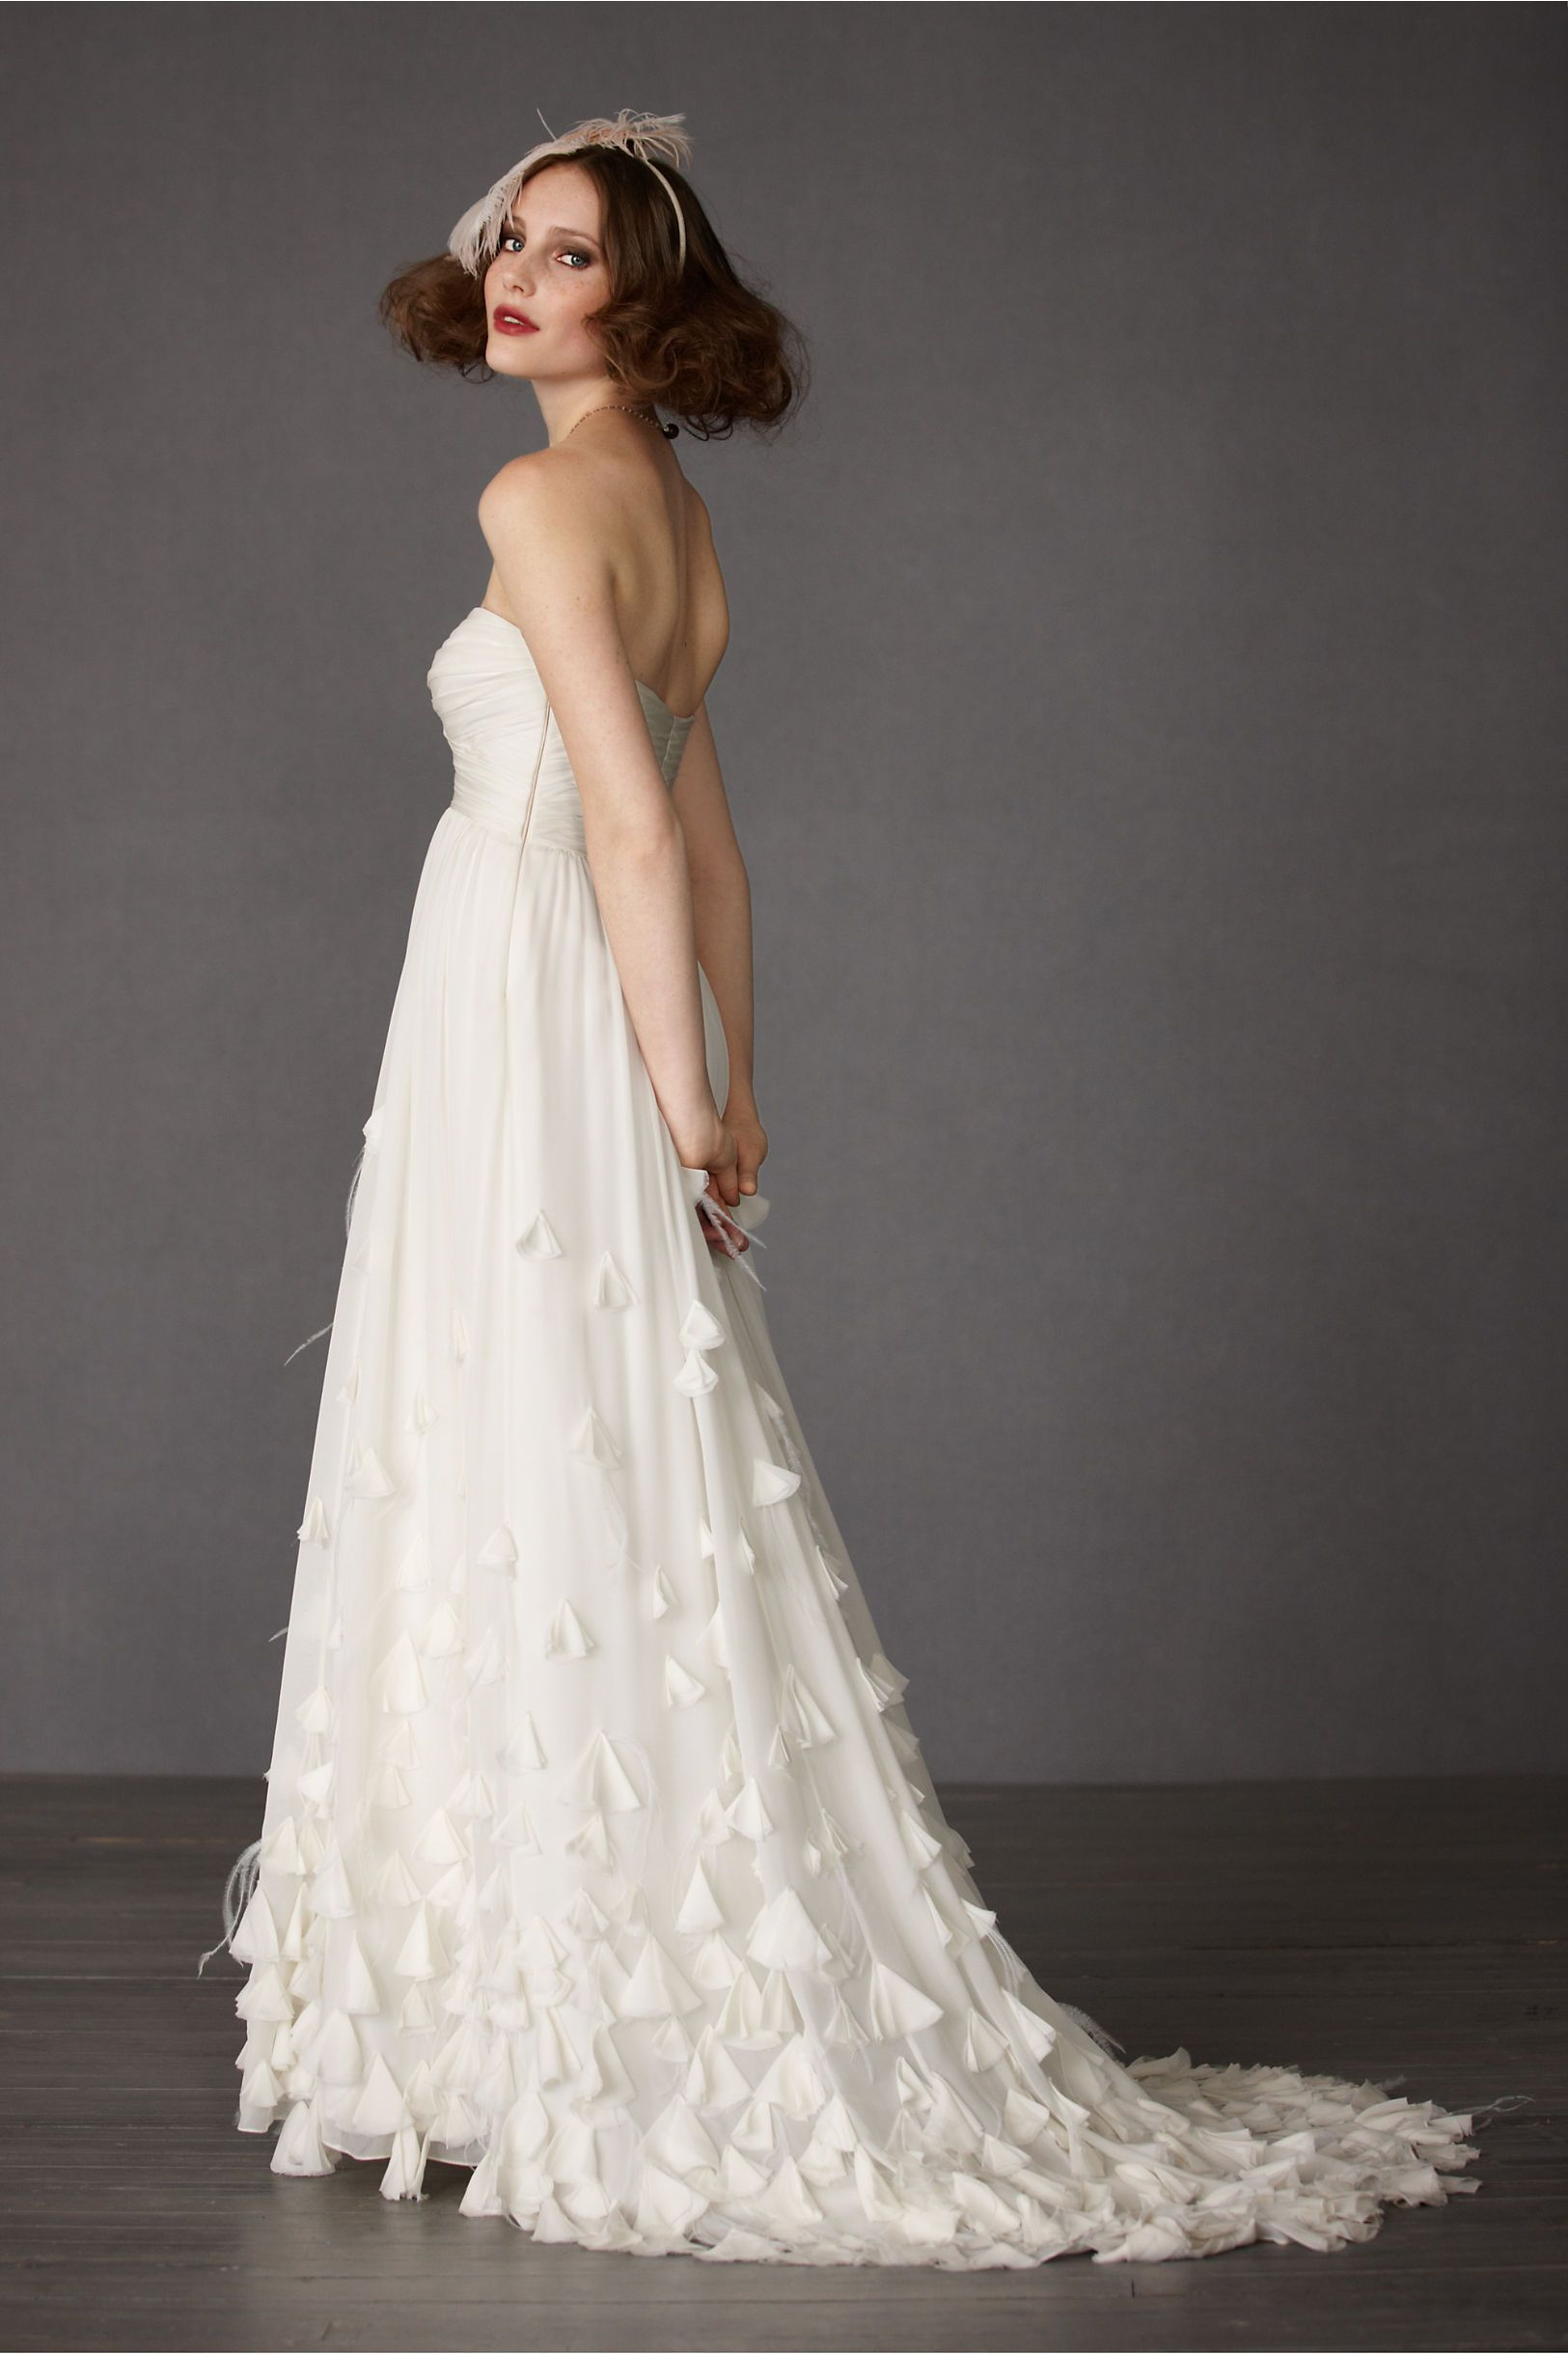 Windswept Gown In The Bride Wedding Dresses At BHLDN Disregard Lady Tottington Hair Please